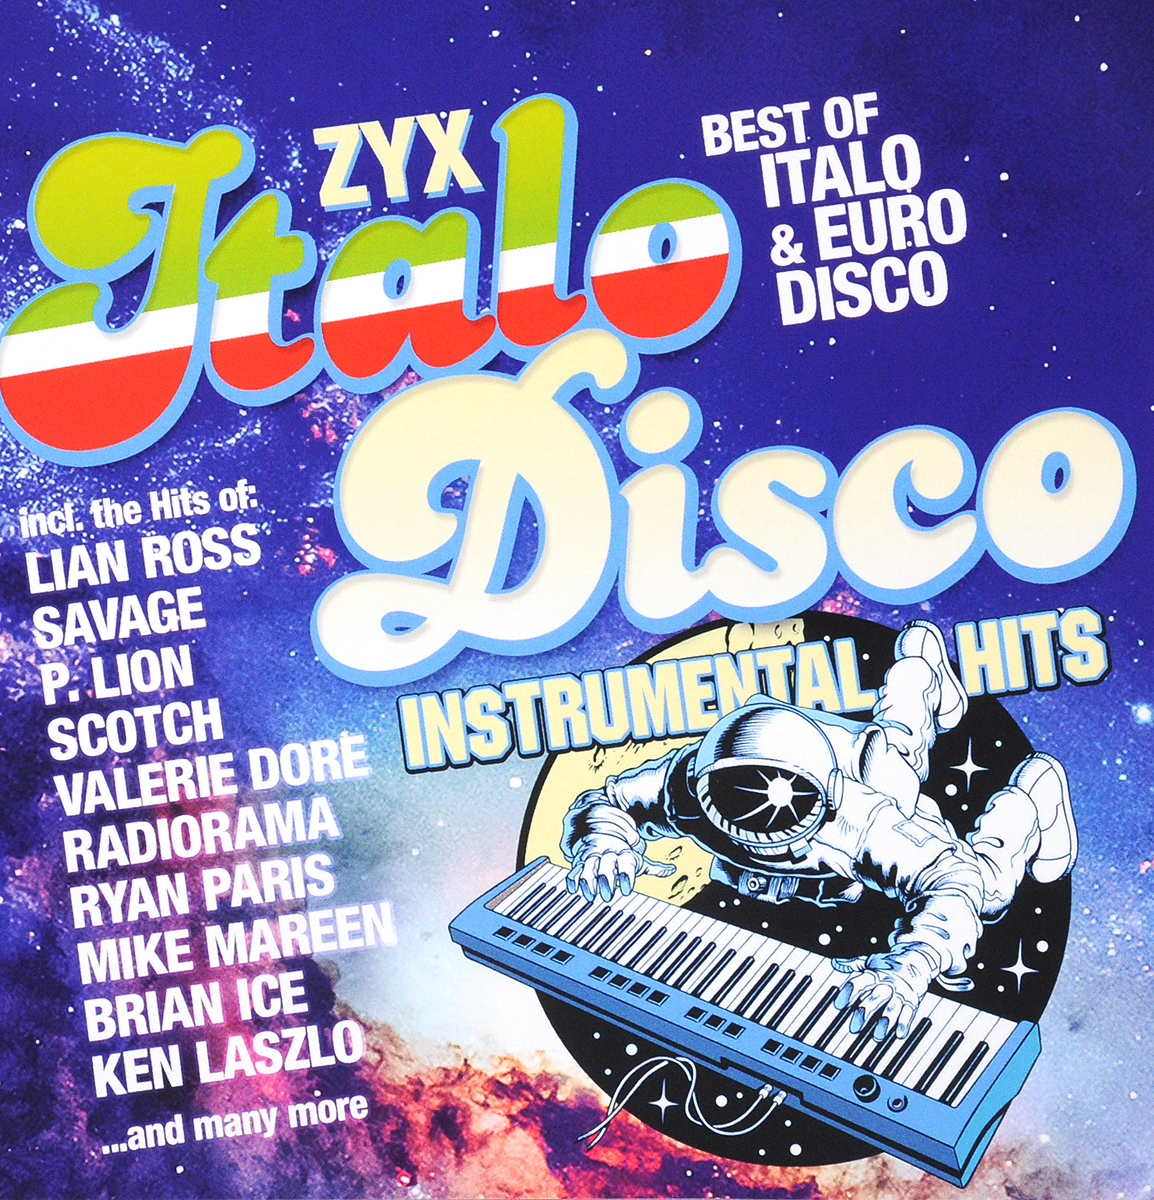 ZYX Italo Disco Instrumental Hits - Best of Italo & Euro Disco (2 CD) цена и фото